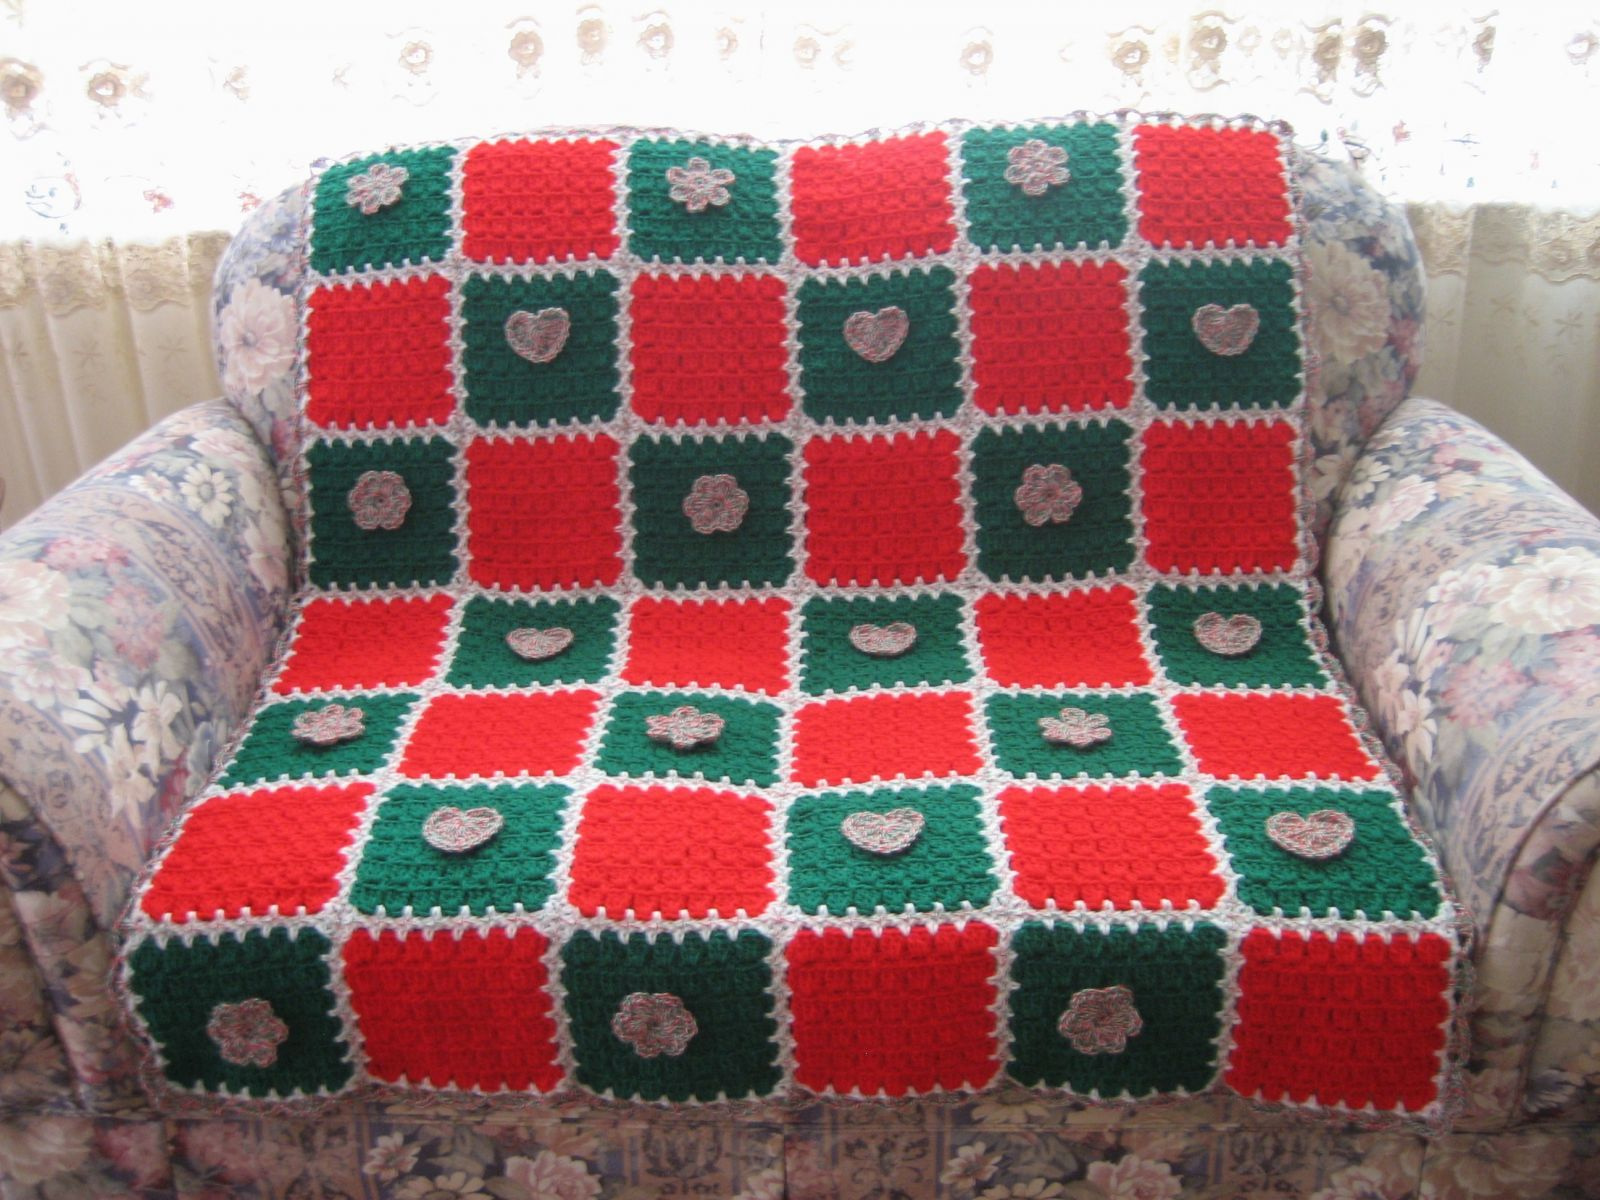 91 Christmas Crochet Afghan Patterns ...